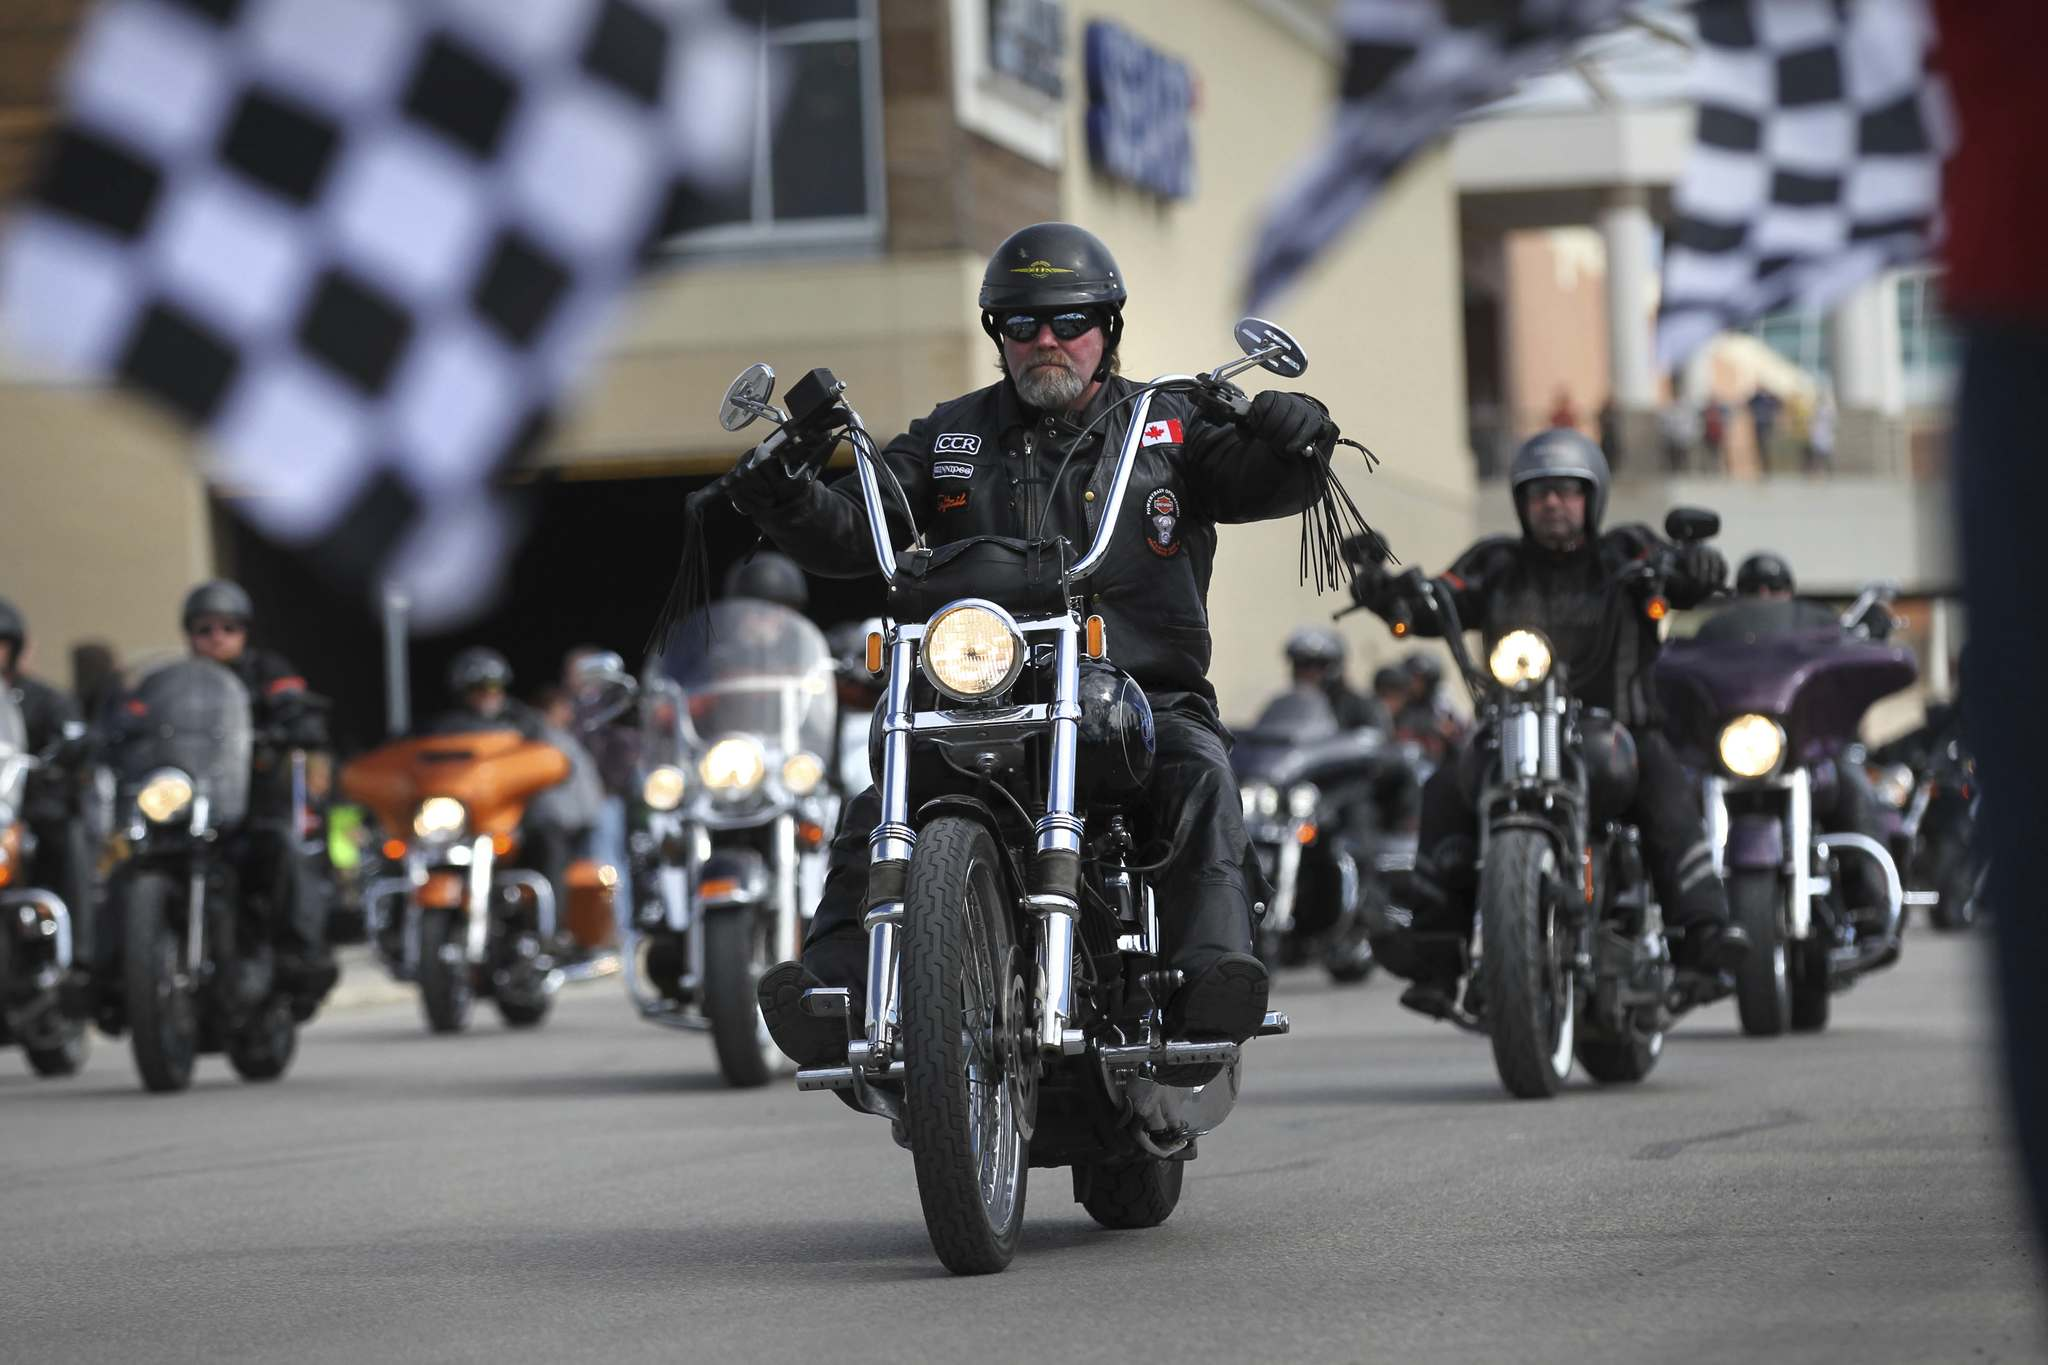 Ruth Bonneville / Winnipeg Free PressLast year more than 1,600 motorcyclists participated in the annual Ride for Dad to raise funds for prostate cancer. The 2016 Ride for Dad takes place tomorrow.